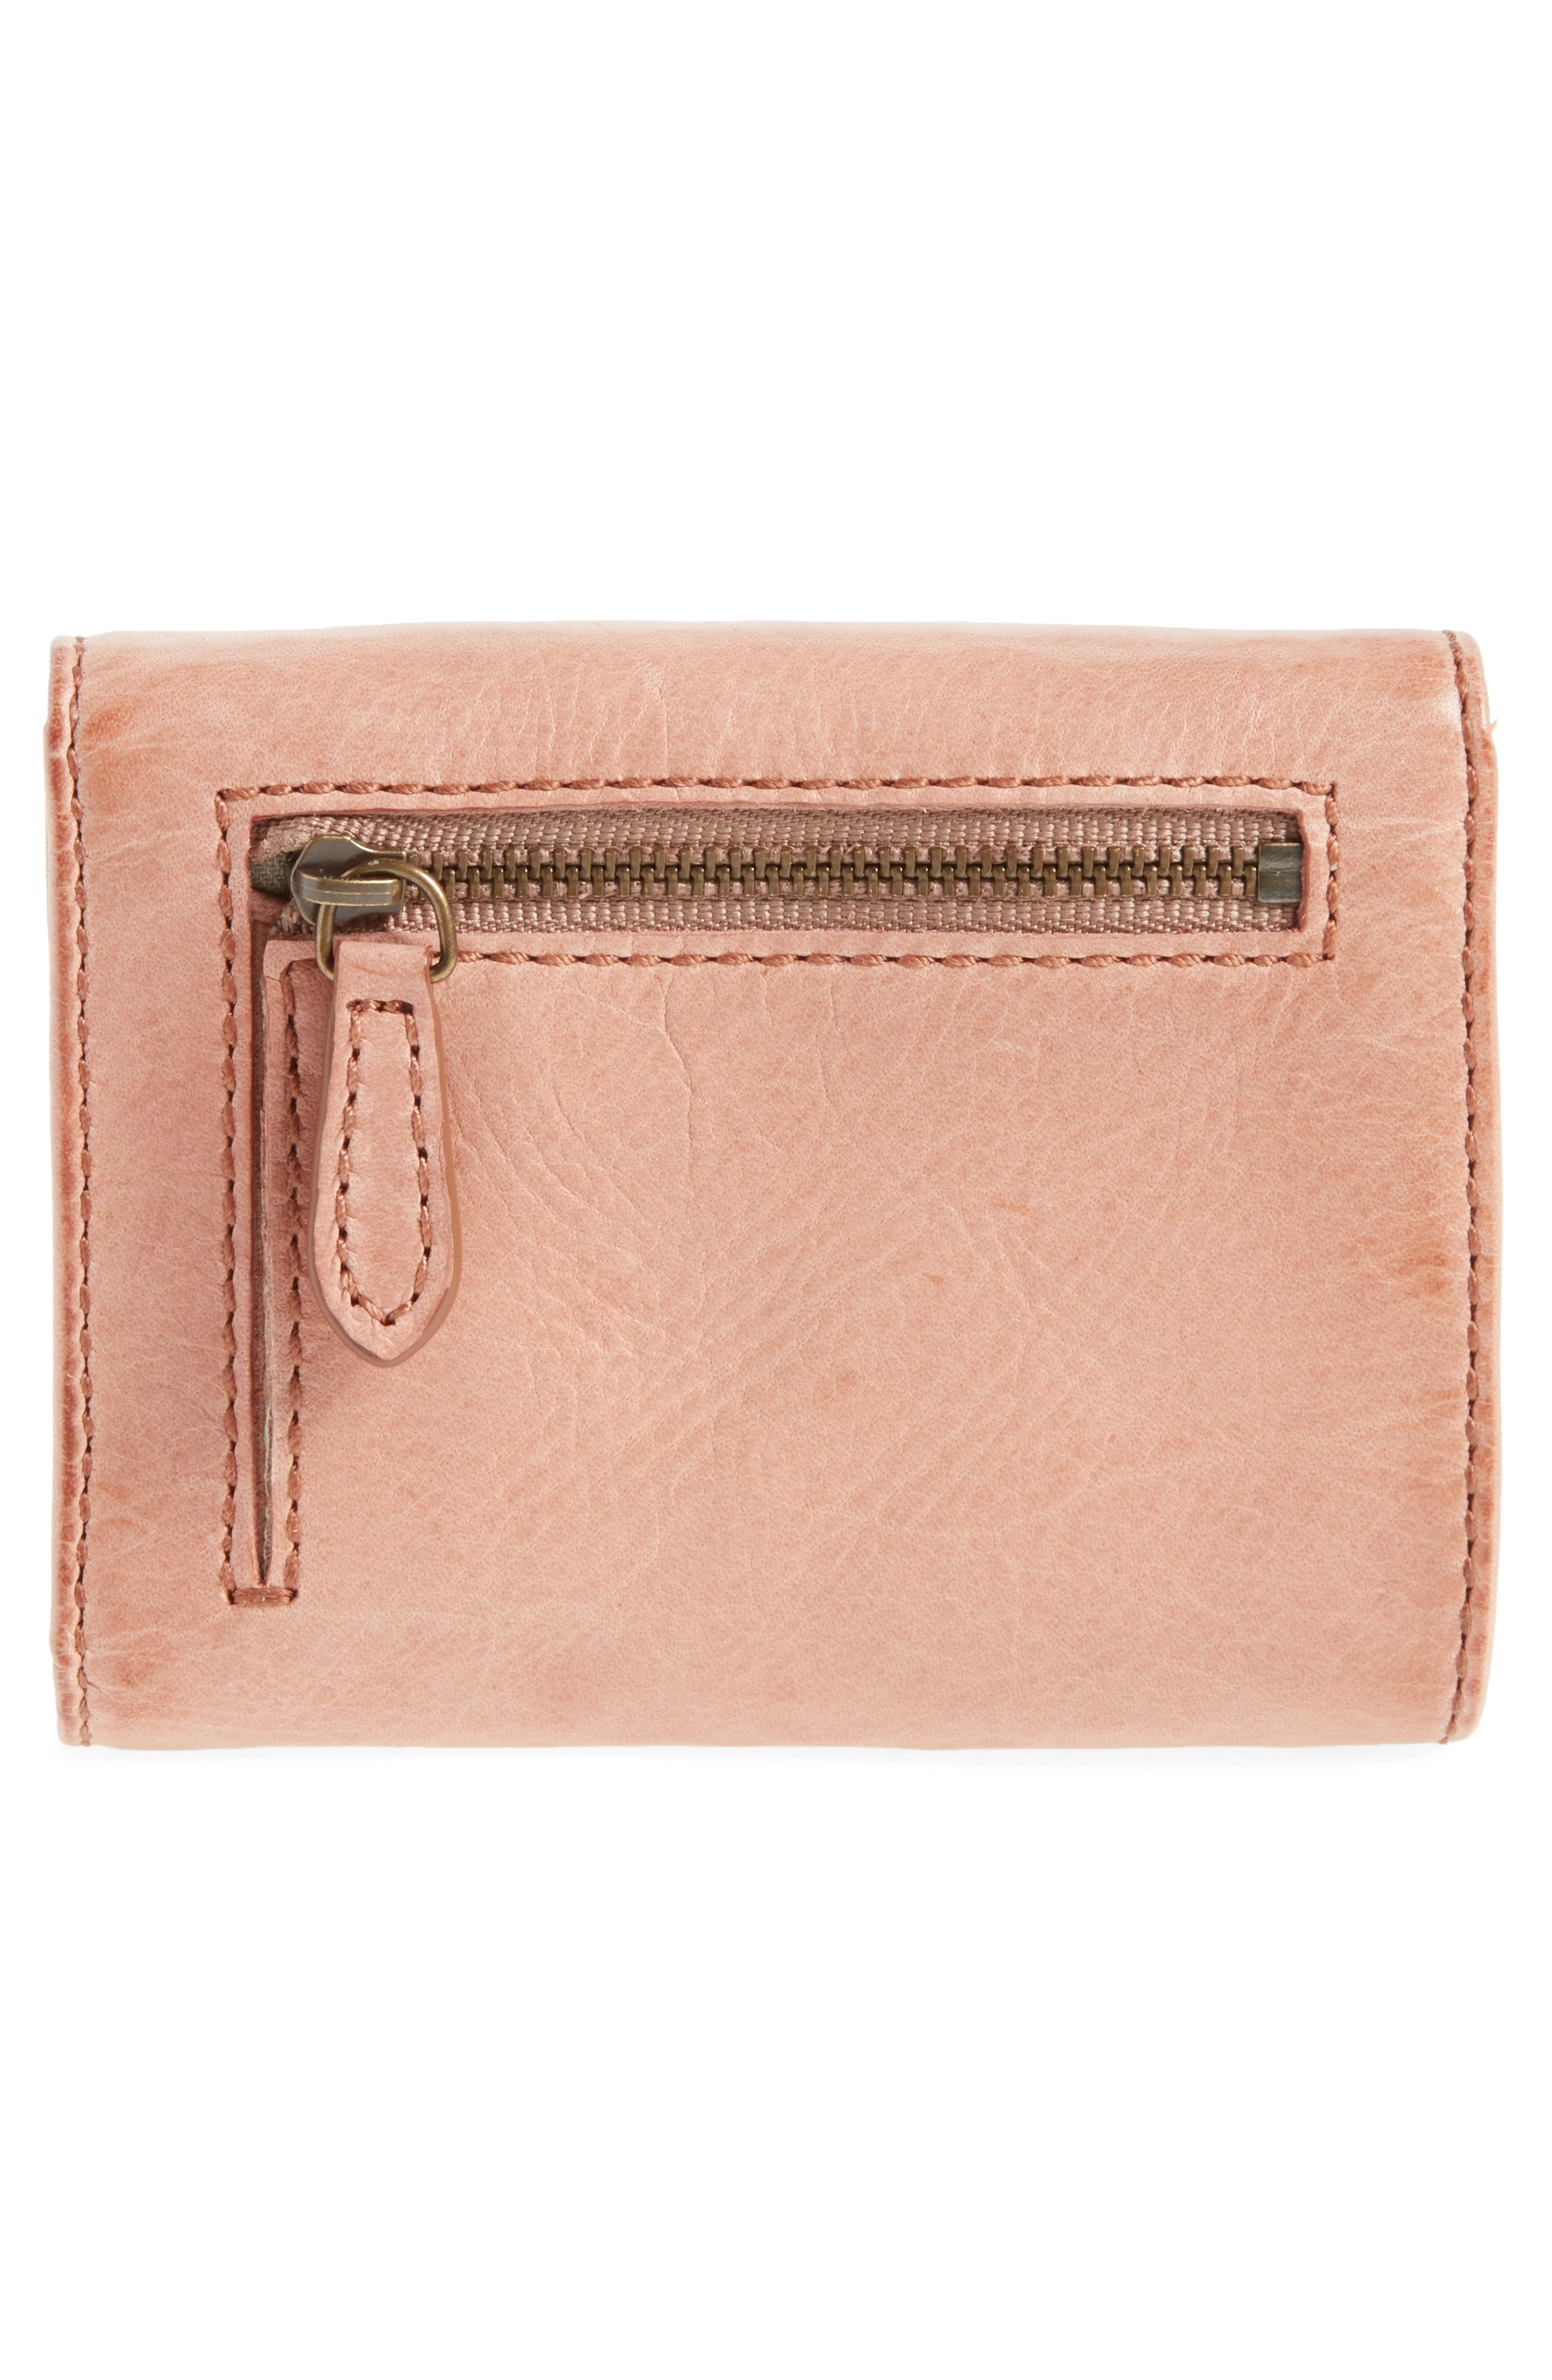 Melissa Medium Trifold Leather Wallet,                             Alternate thumbnail 4, color,                             Dusty Rose